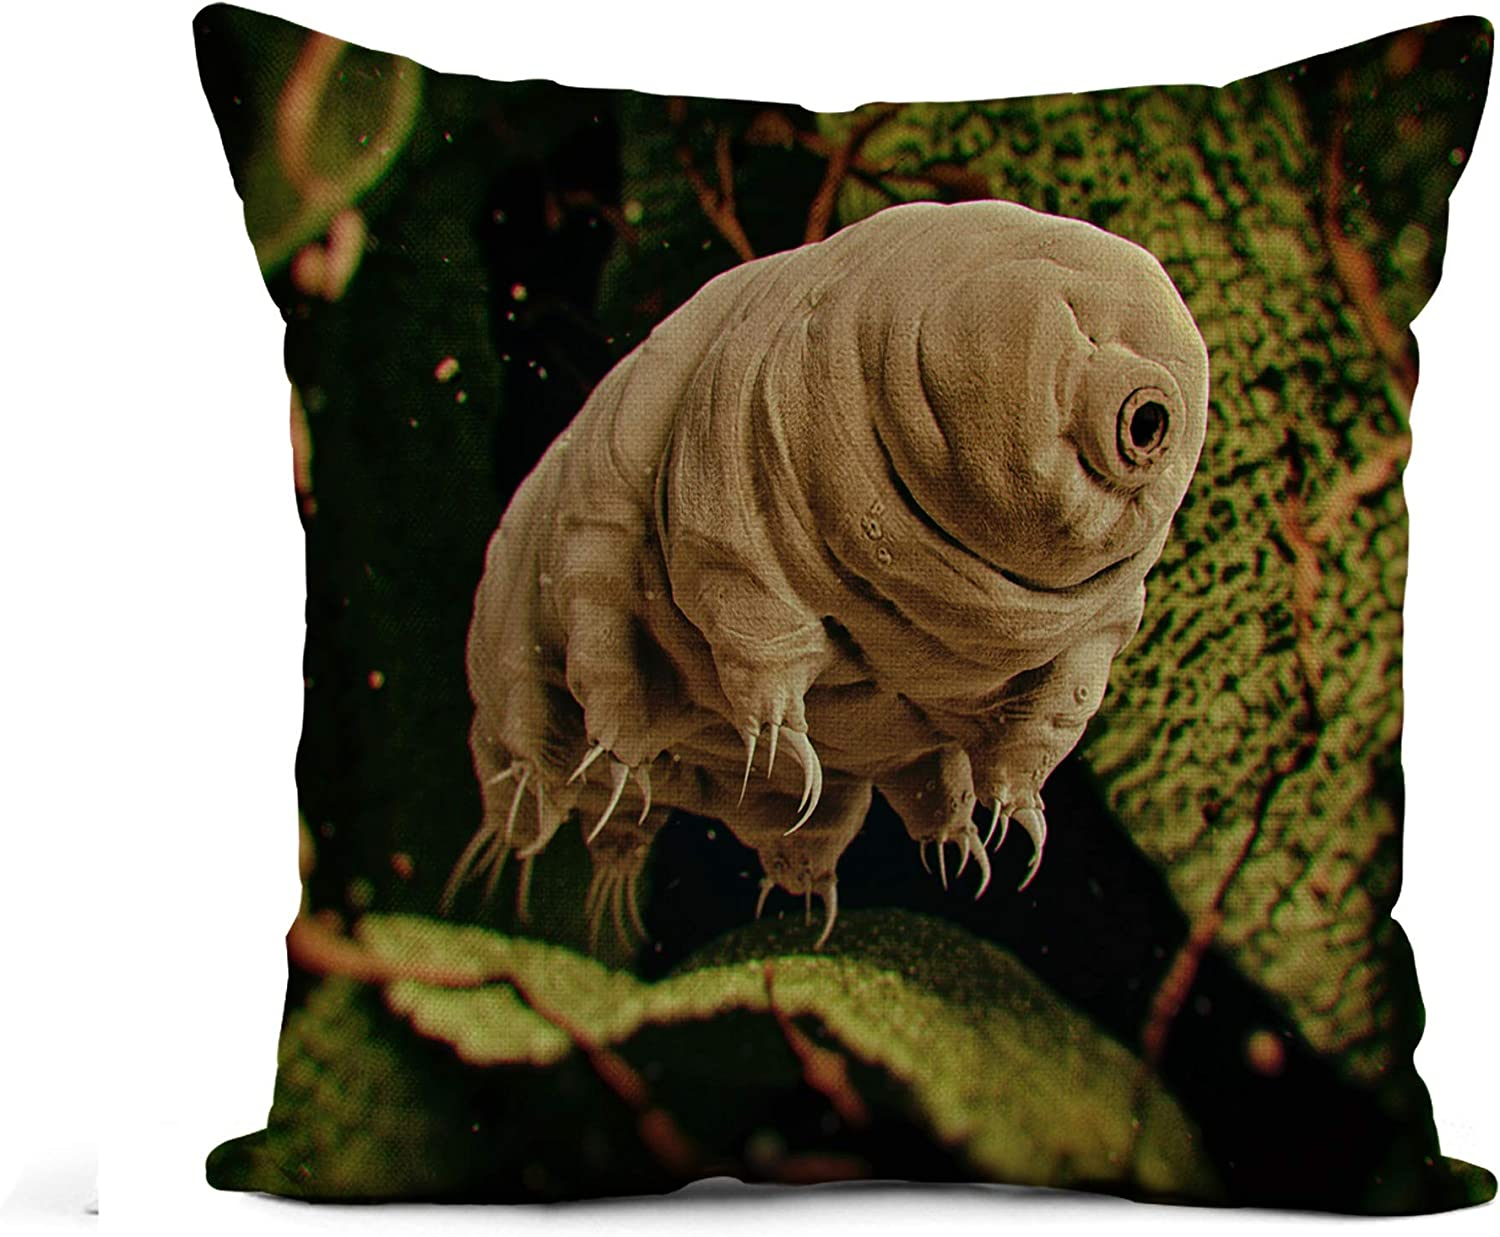 Awowee Flax Throw Pillow Cover Tardigrada Tardigrade Water Bear 3D Rendered Moss Microscope Biology 20x20 Inches Pillowcase Home Decor Square Cotton Linen Pillow Case Cushion Cover